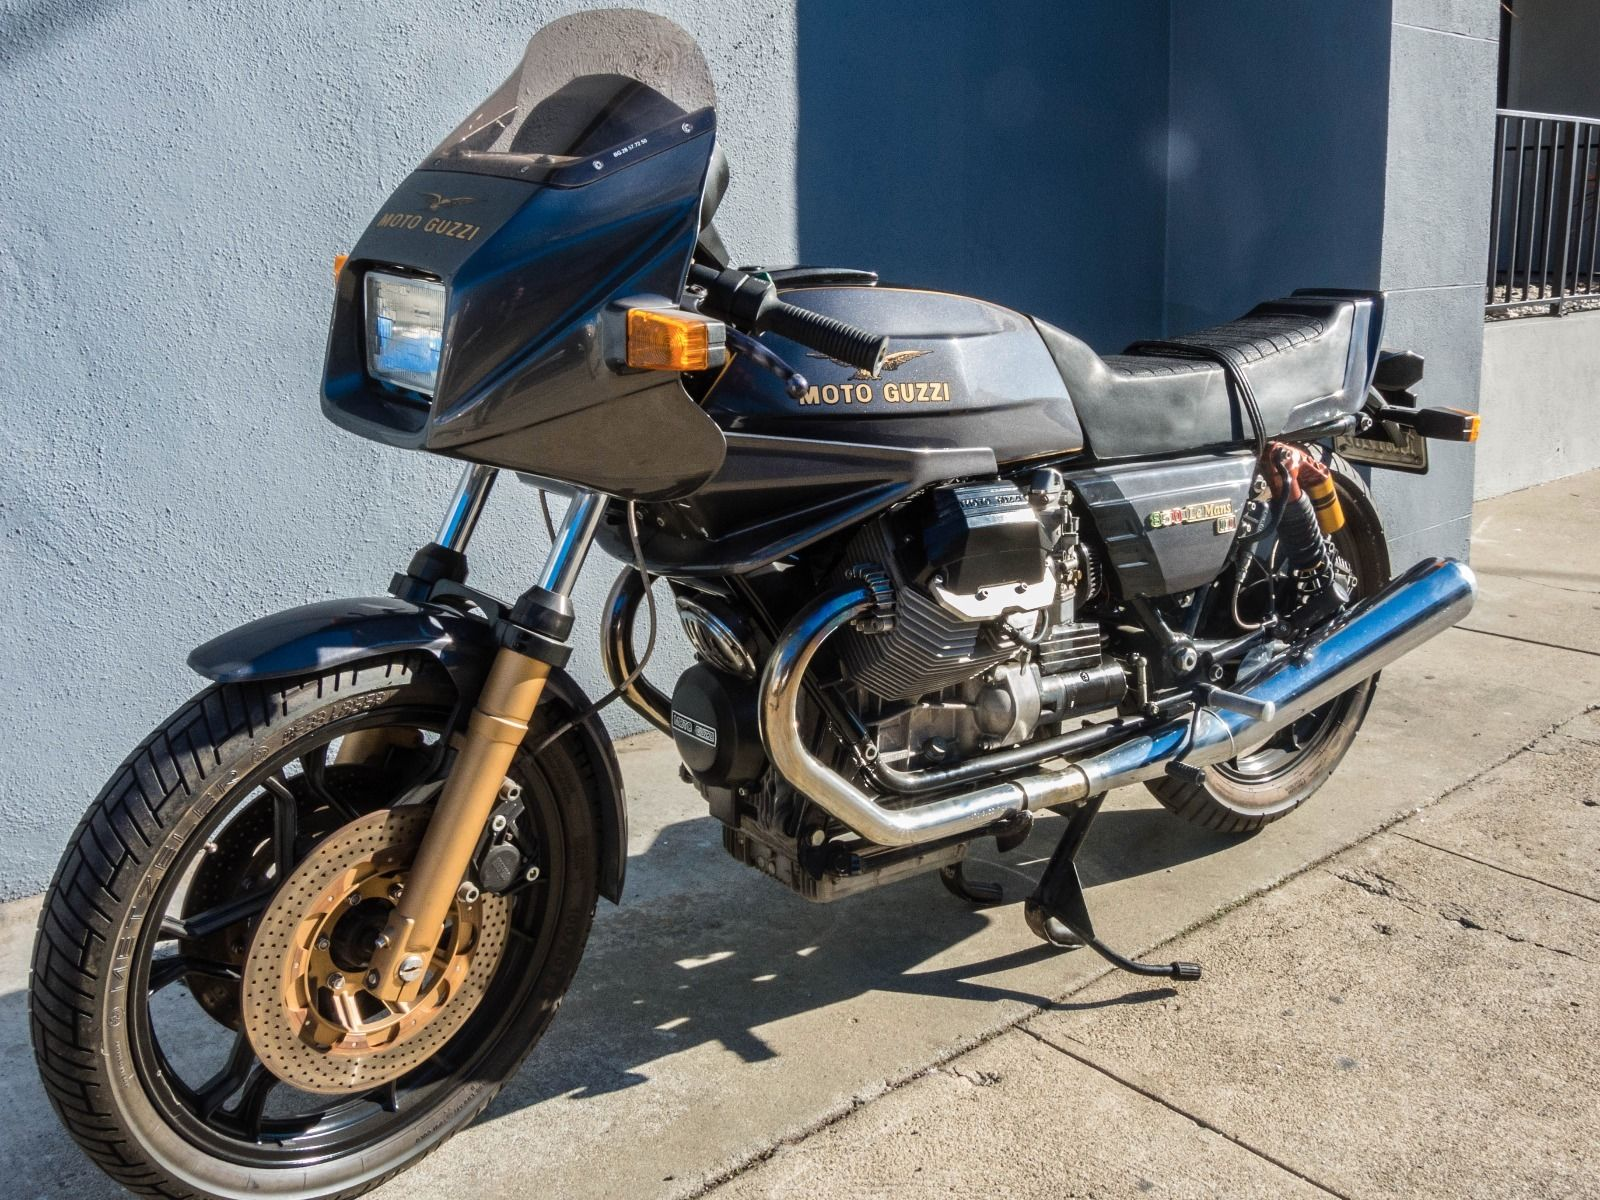 set up 1984 moto guzzi 850 le mans mk iii rare sportbikes for sale. Black Bedroom Furniture Sets. Home Design Ideas